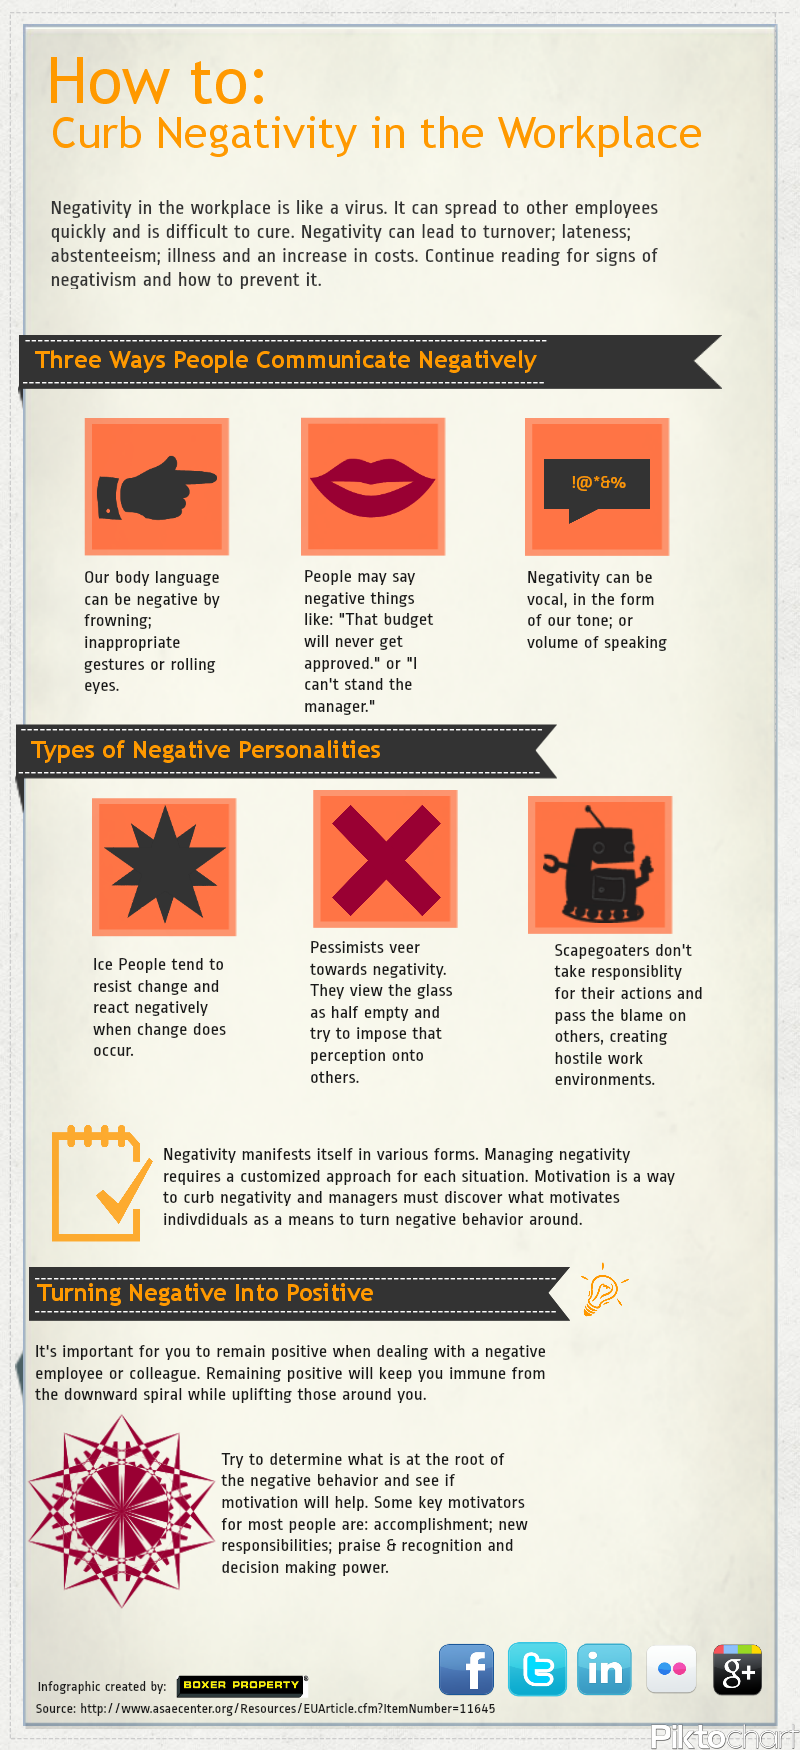 How To Curb Negativity in the Workplace